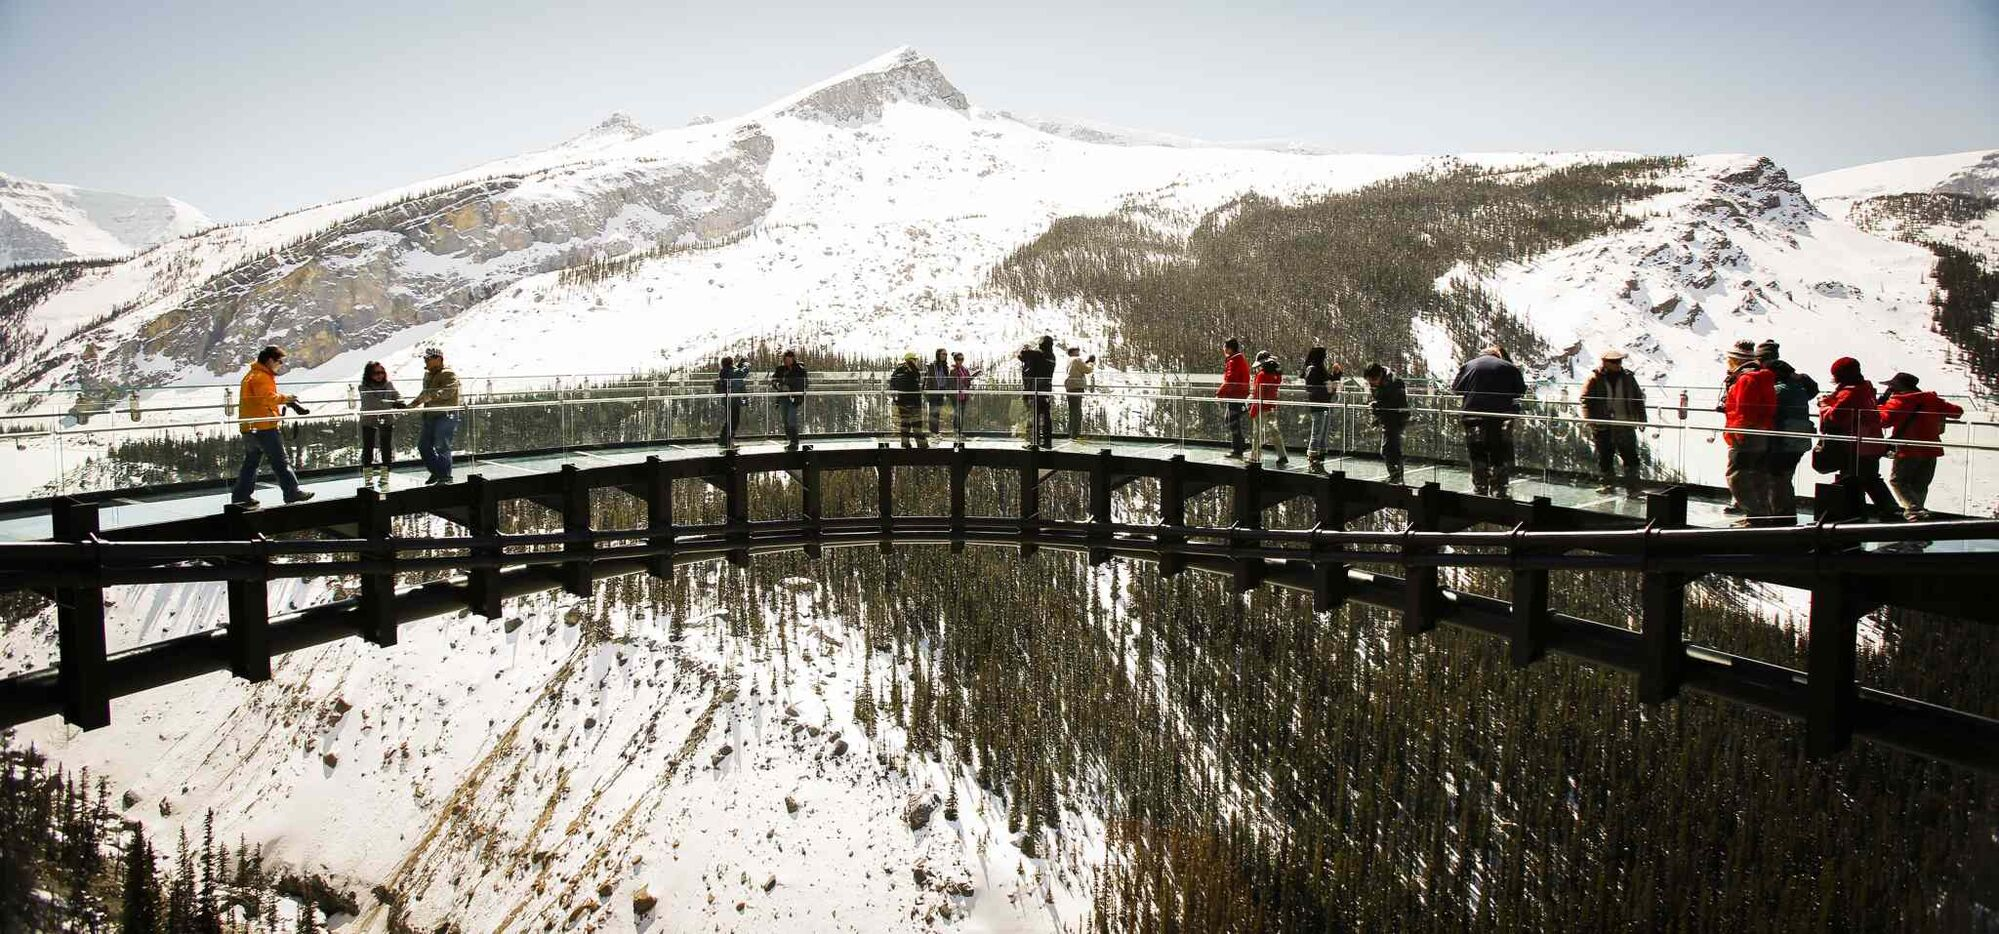 "Tourists take in the views from the newly opened Glacier SkyWalk near the Columbia Icefields in Alberta's Jasper National Park. Many environmentalists and residents of Jasper believe it is unnecessary and poses a risk to wildlife, particularly mountain goats and bighorn sheep. The Alberta Wilderness Association says it represents ""encroaching commercialization"" into the national parks. (Jeff McIntosh / The Canadian Press)"